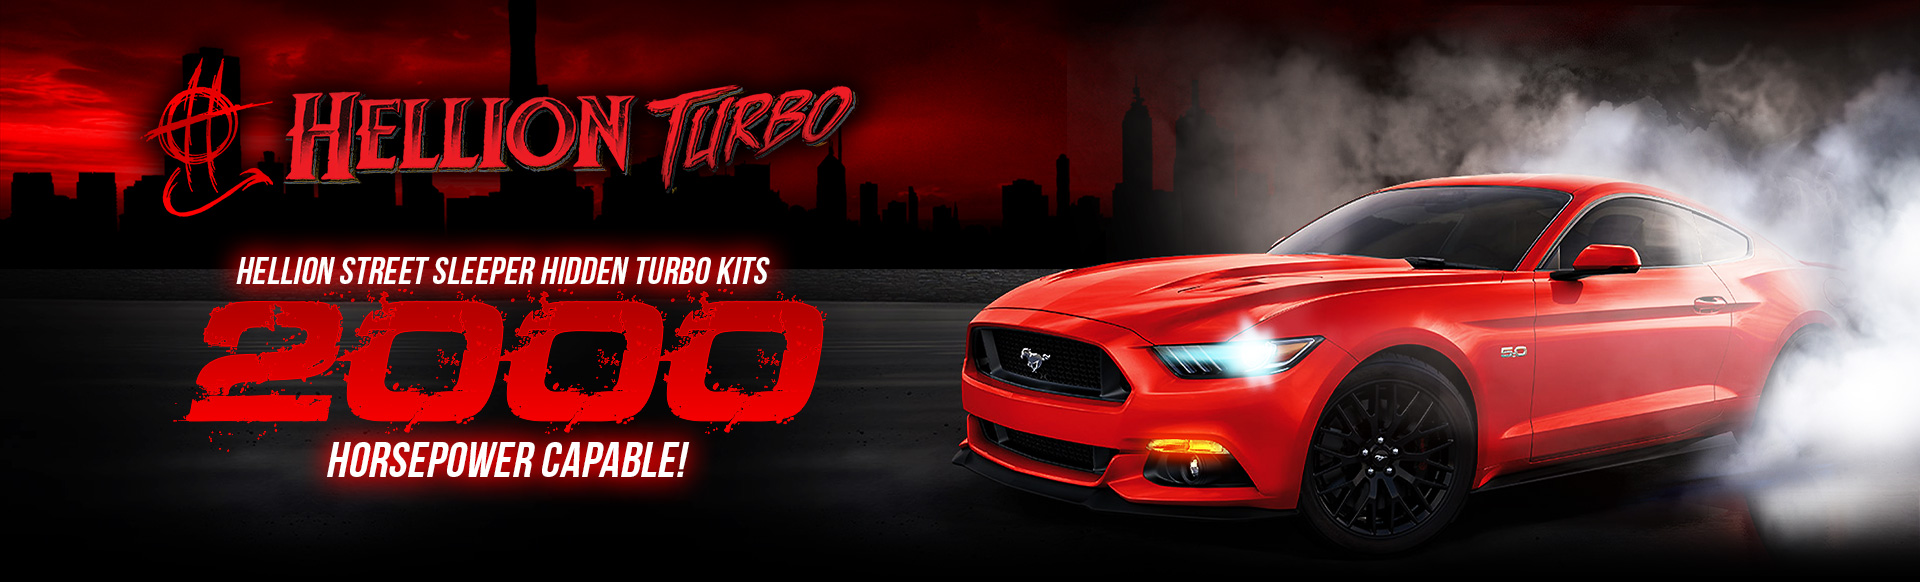 Herrod Performance - The Mustang Specialists In Australia